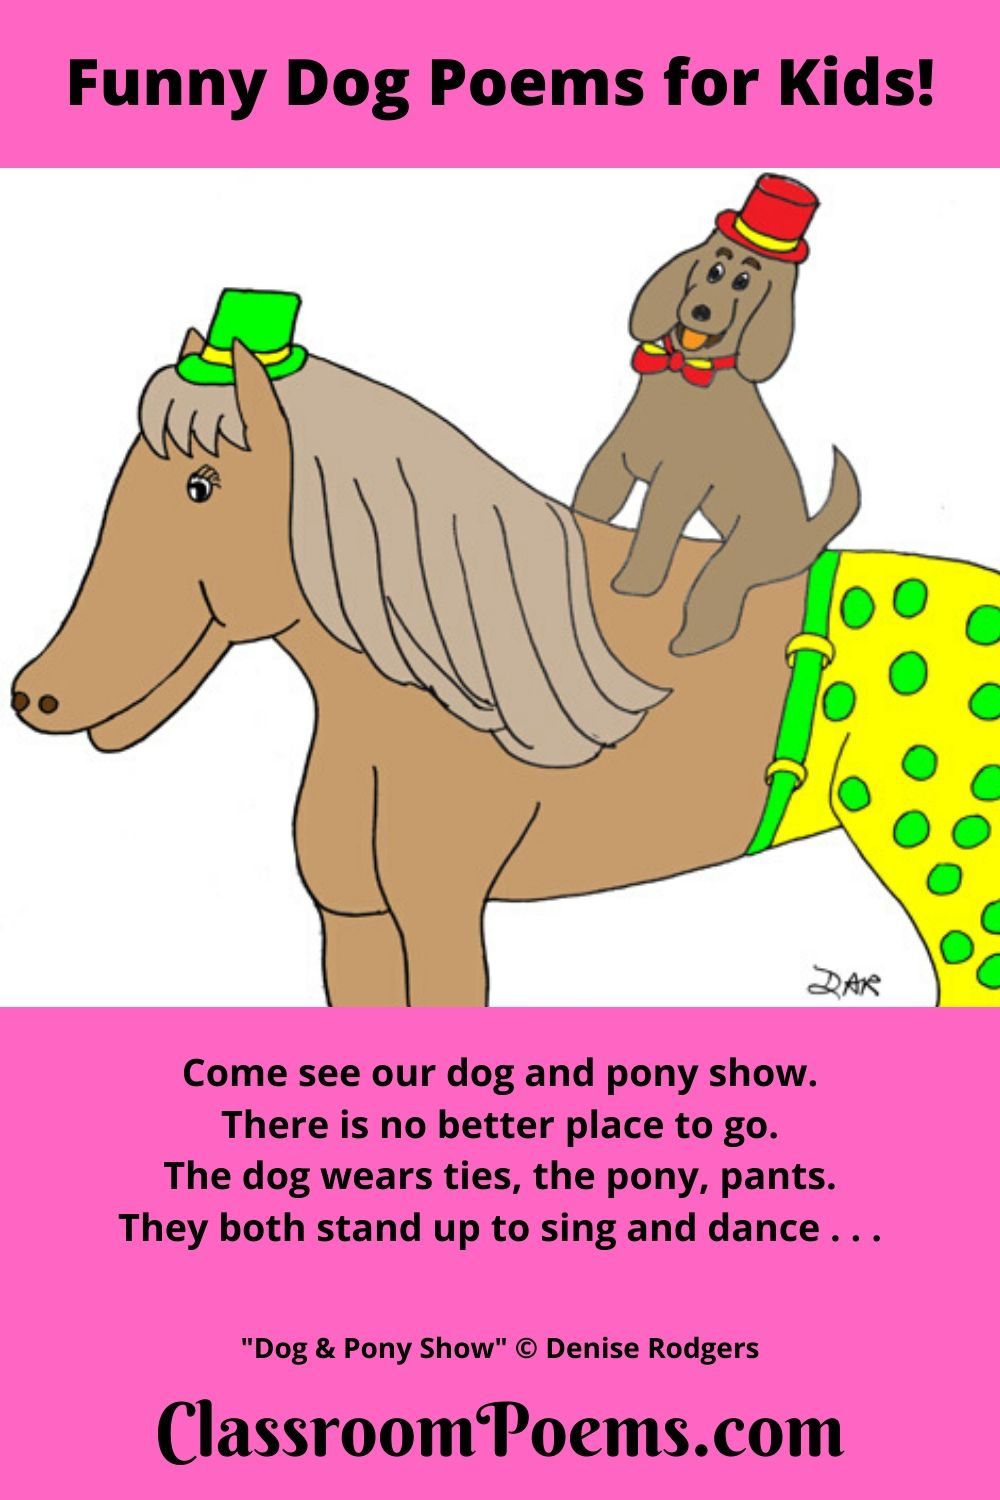 Dog and pony show. Funny dog poems.